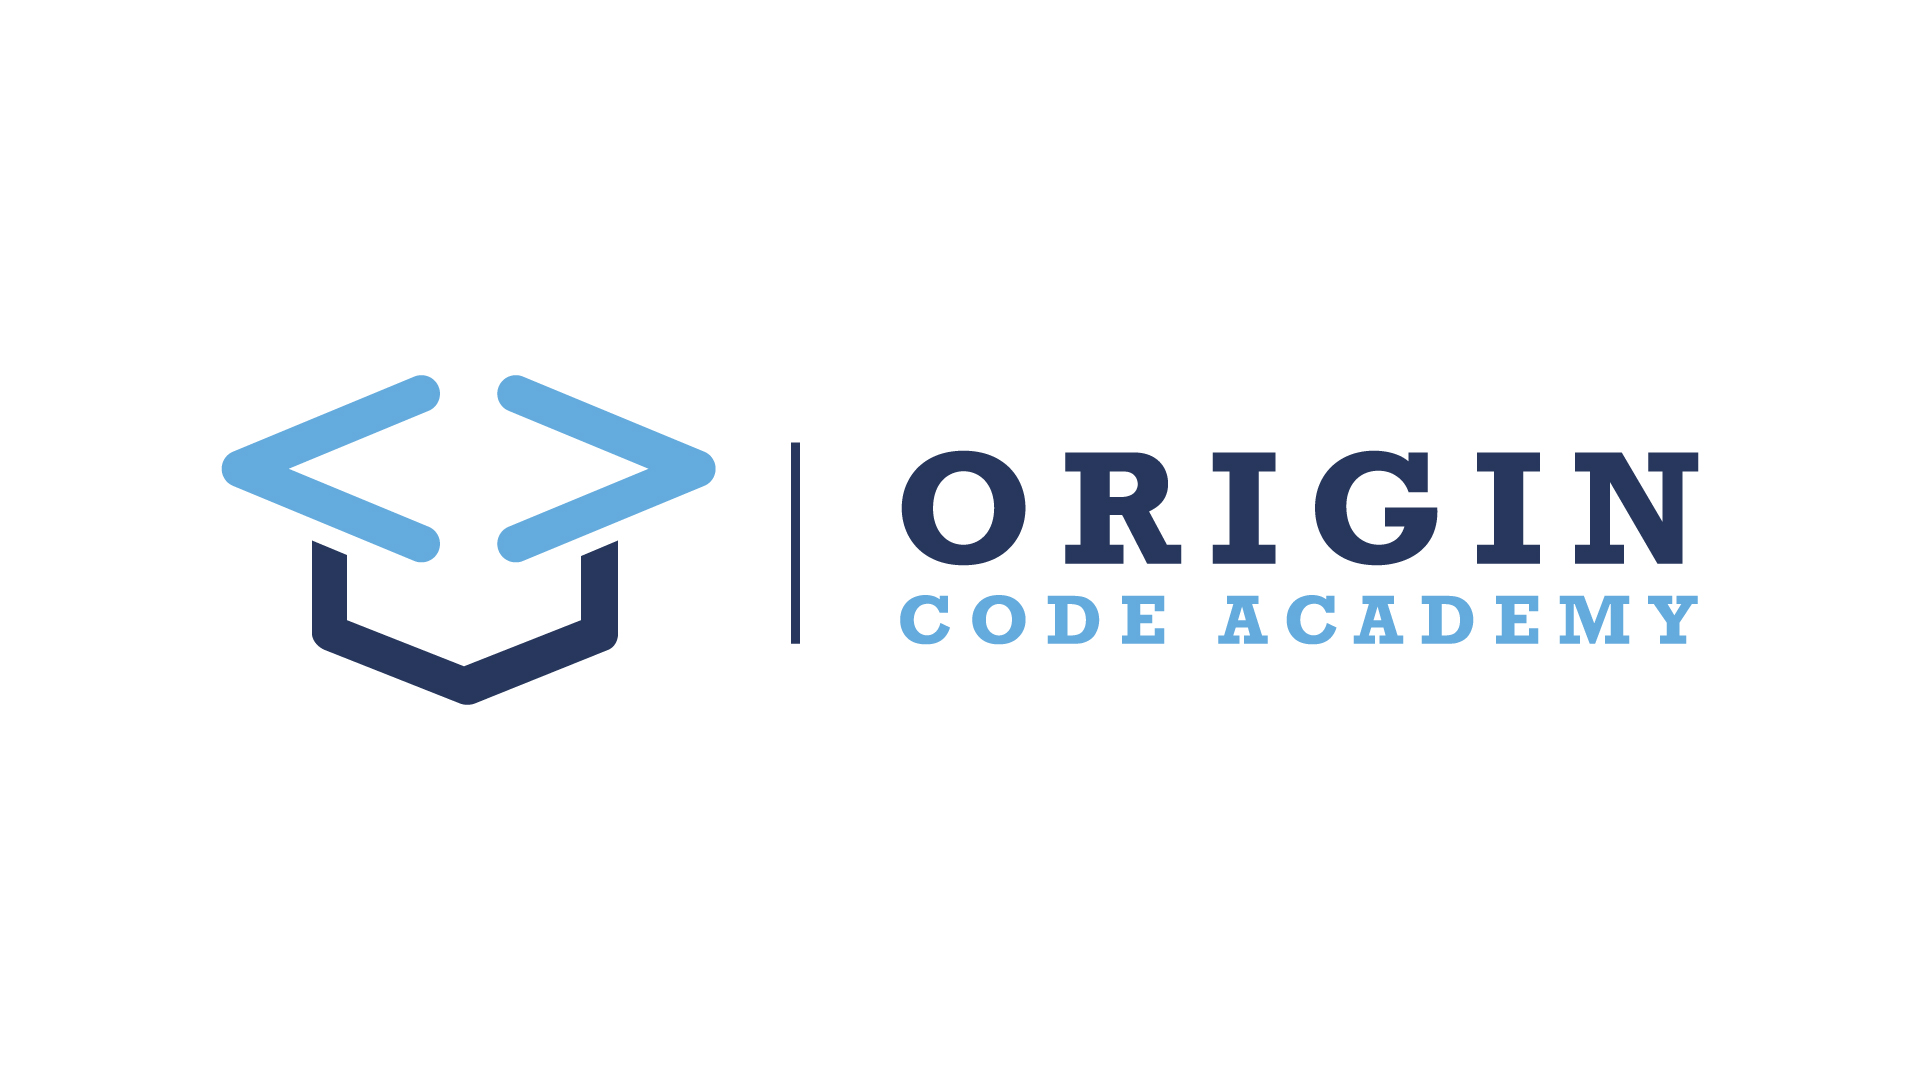 Origin Code Academy Launches Programmer Training Courses in San Diego